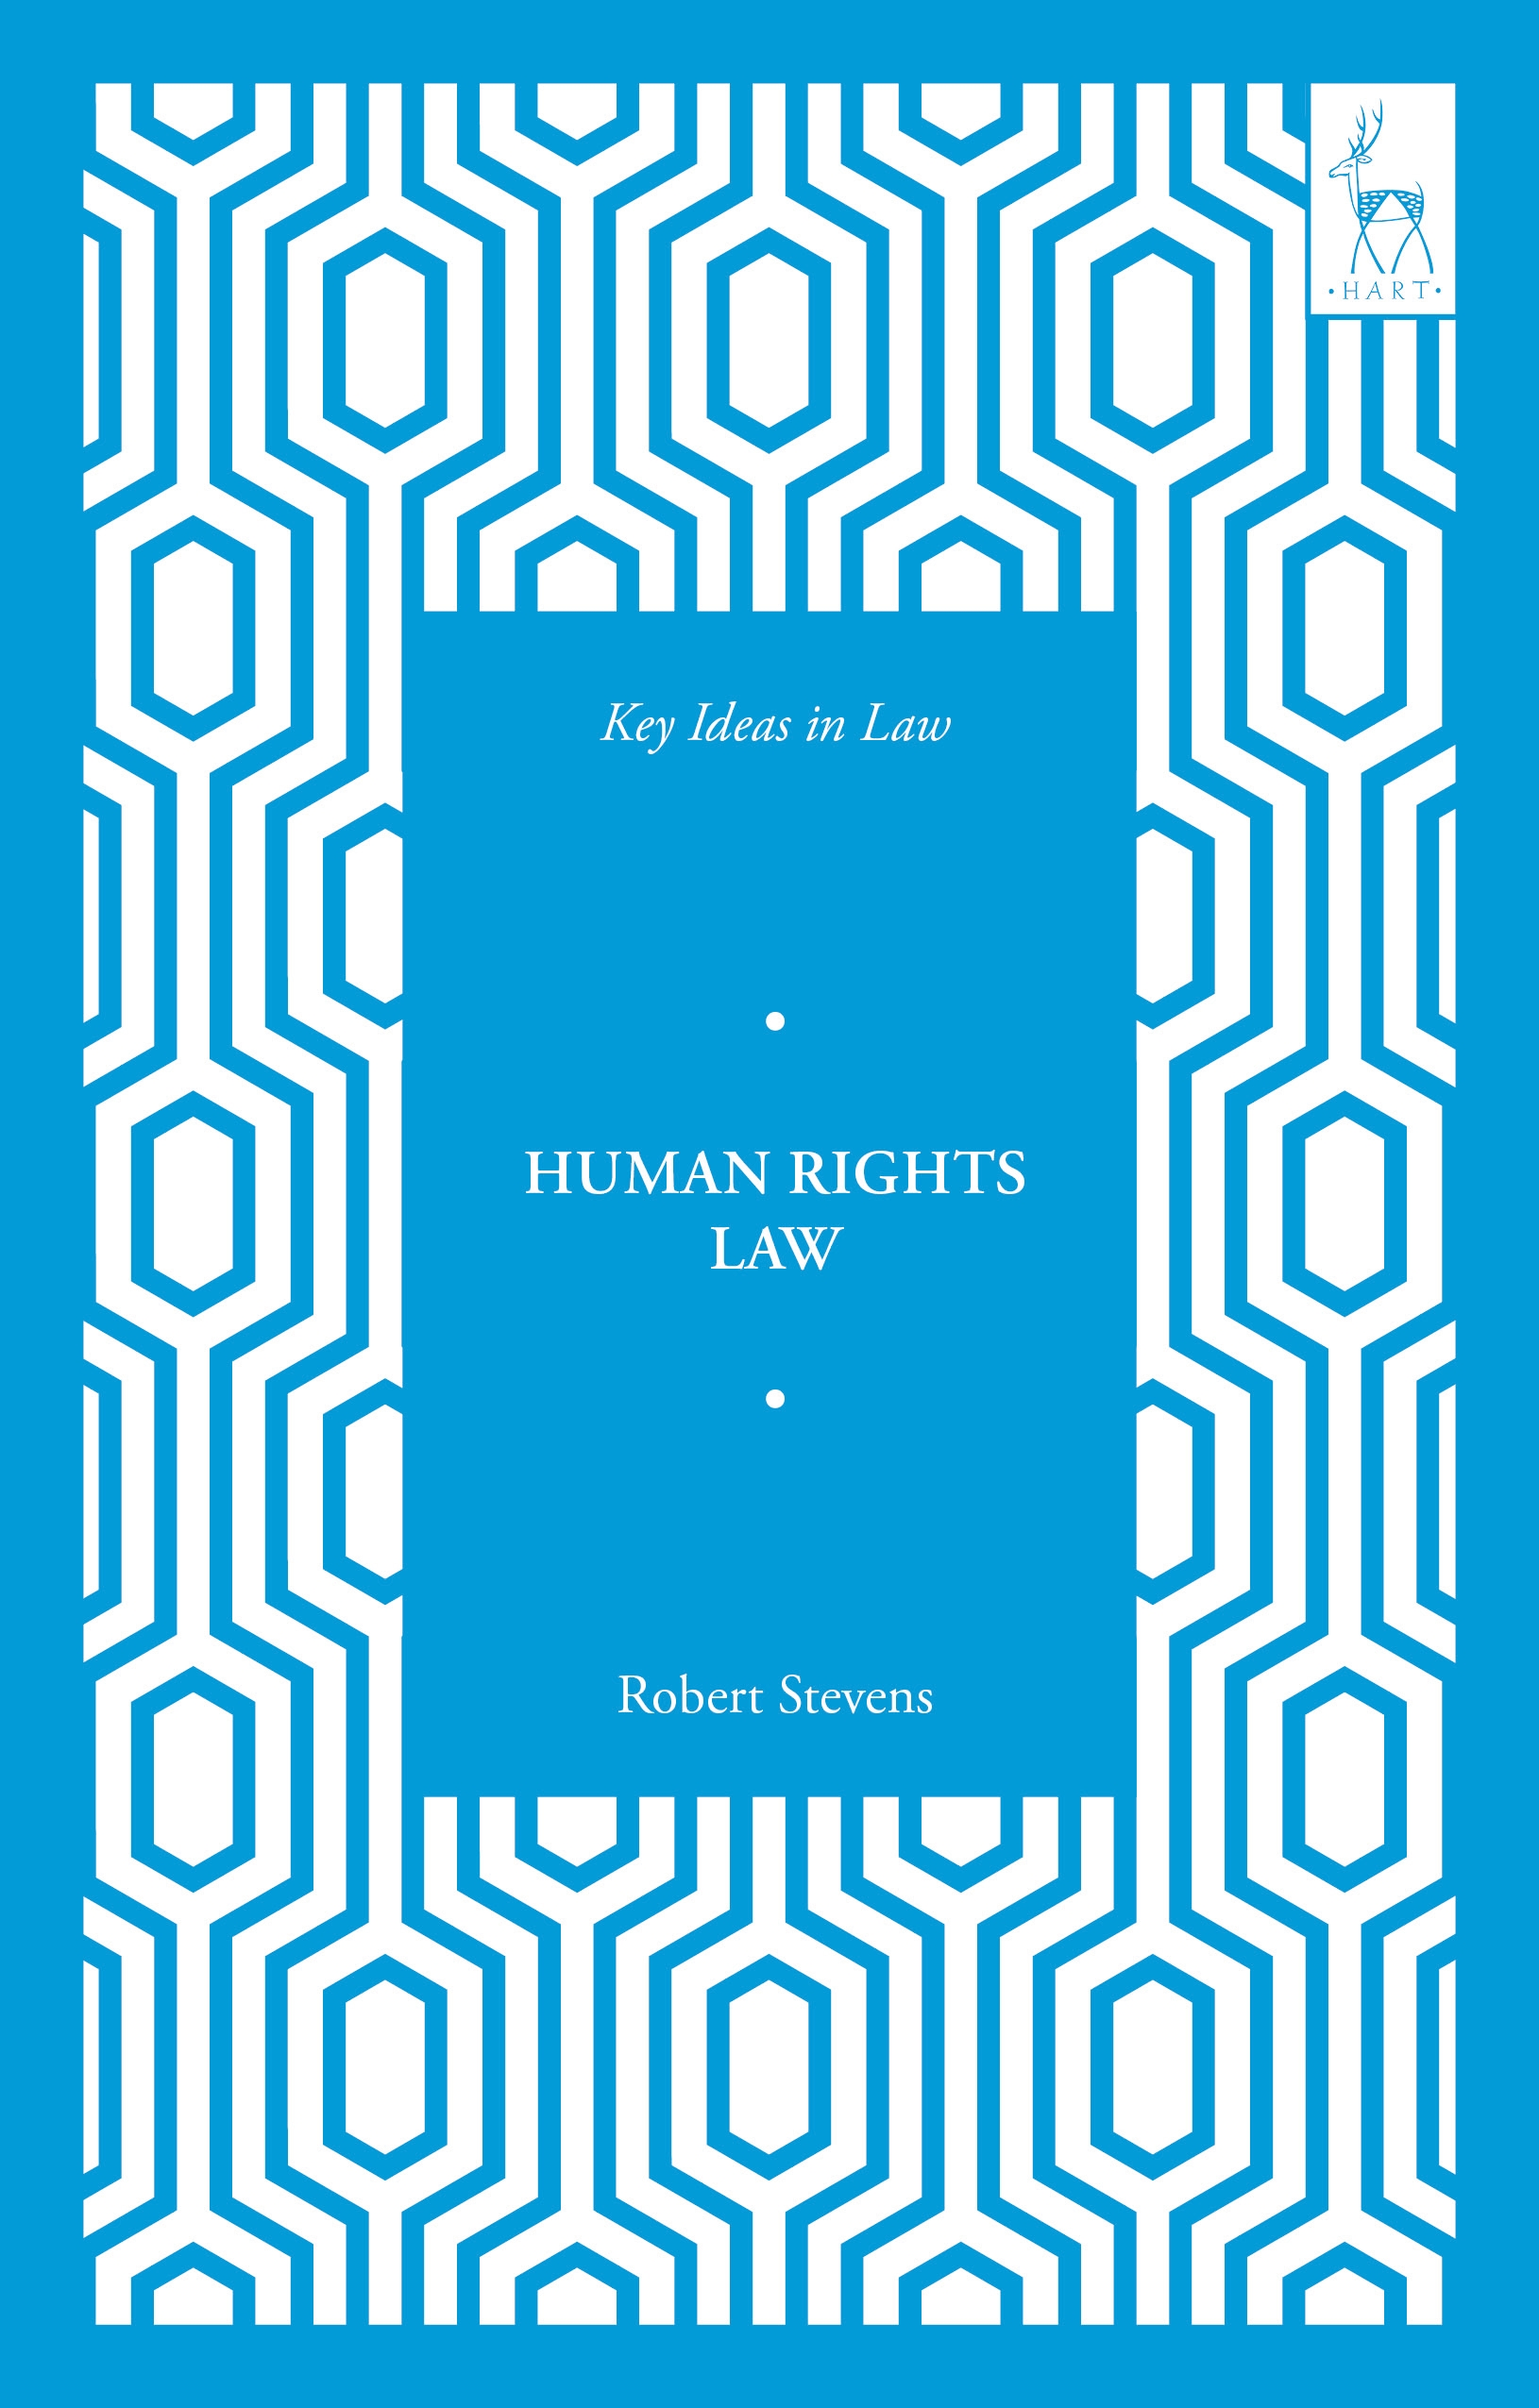 Key Ideas Human Rights 9781509910106